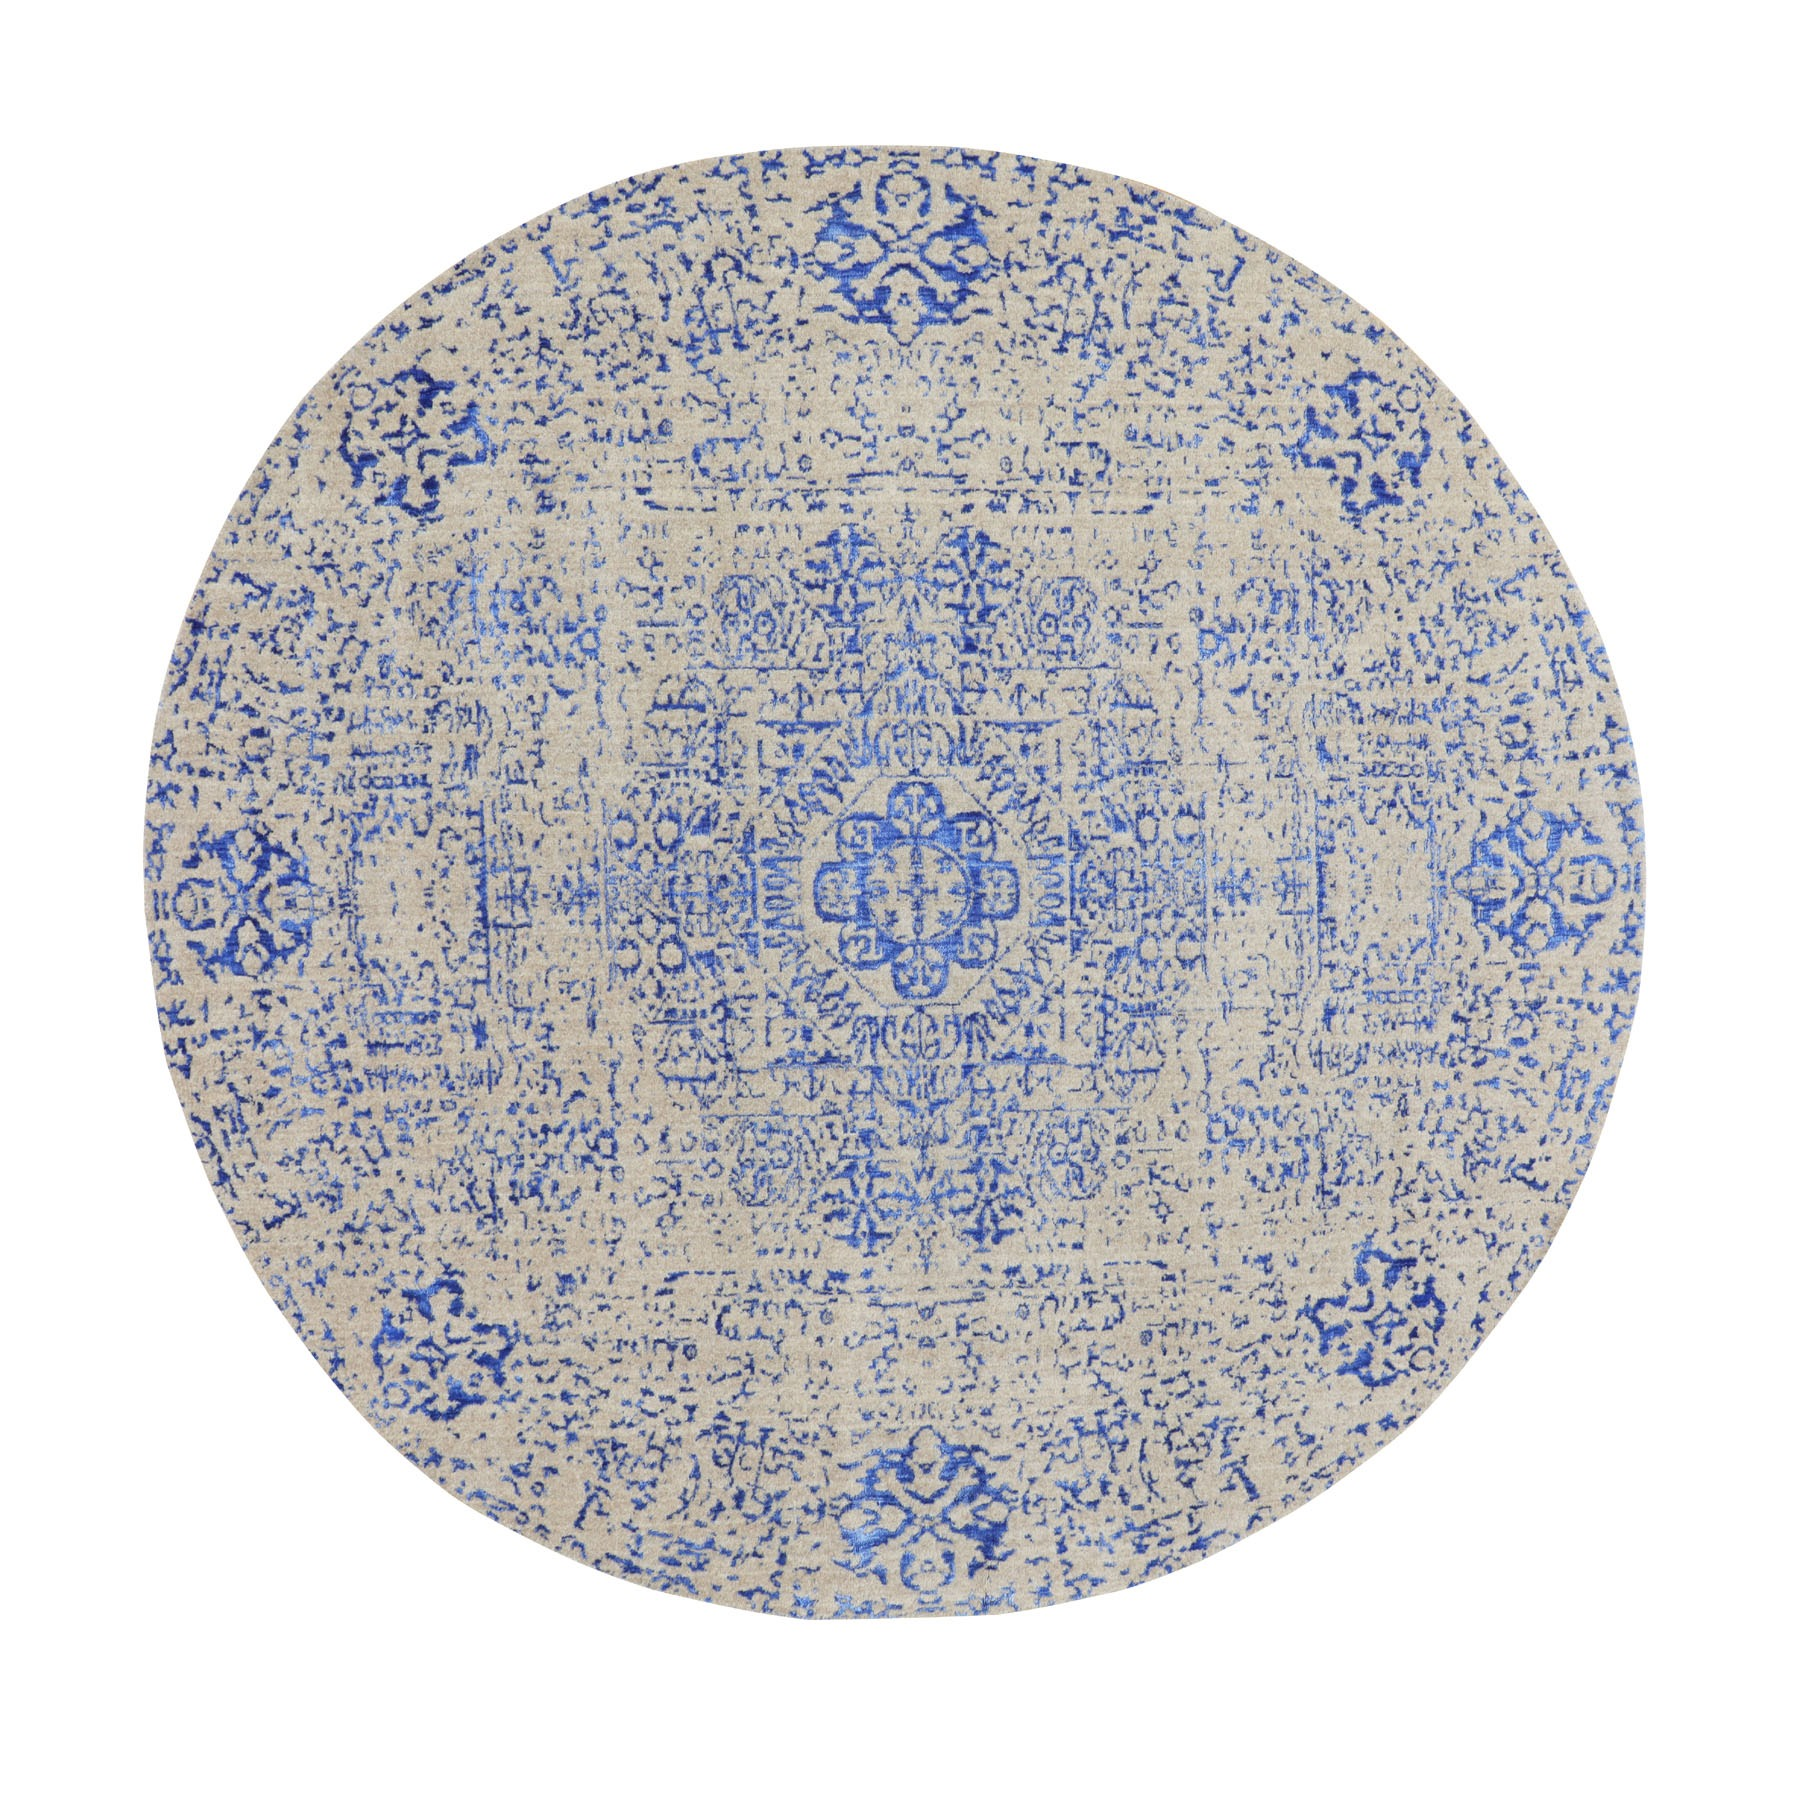 Intricate Collection Hand Loomed Blue Rug No: 1116236